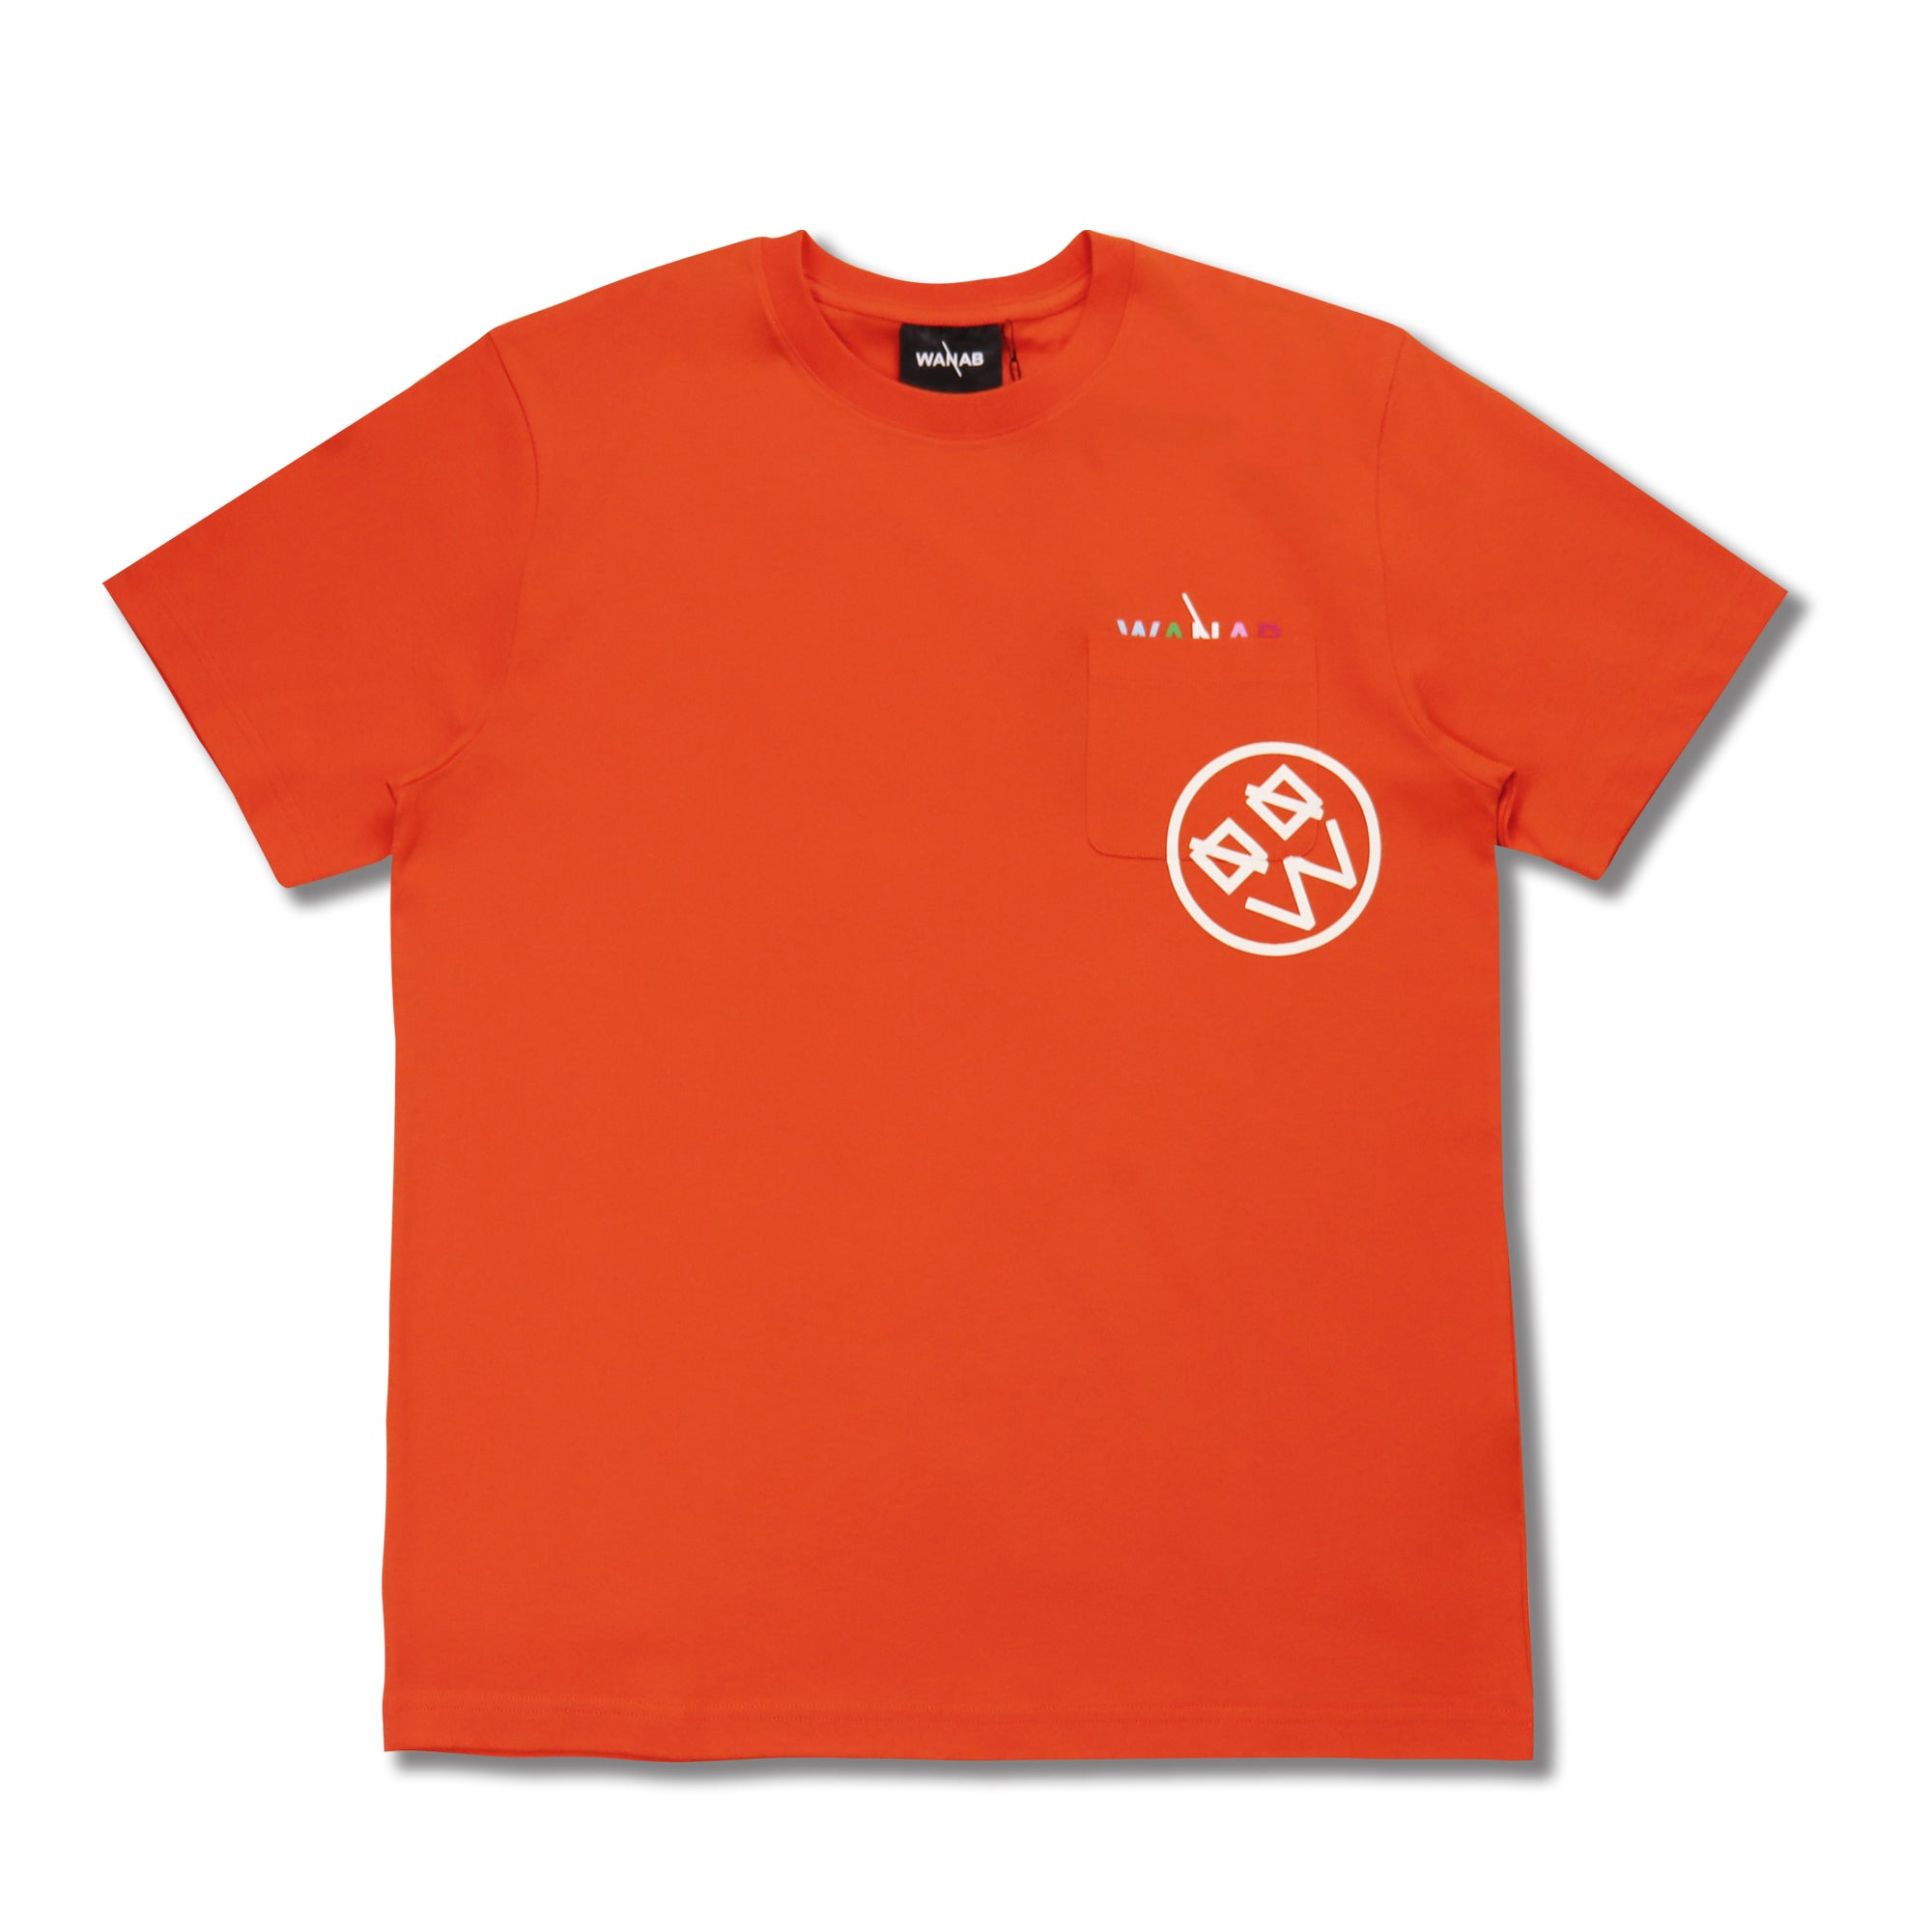 WANAB Glow In The Dark Smiley Face Tee - Orange